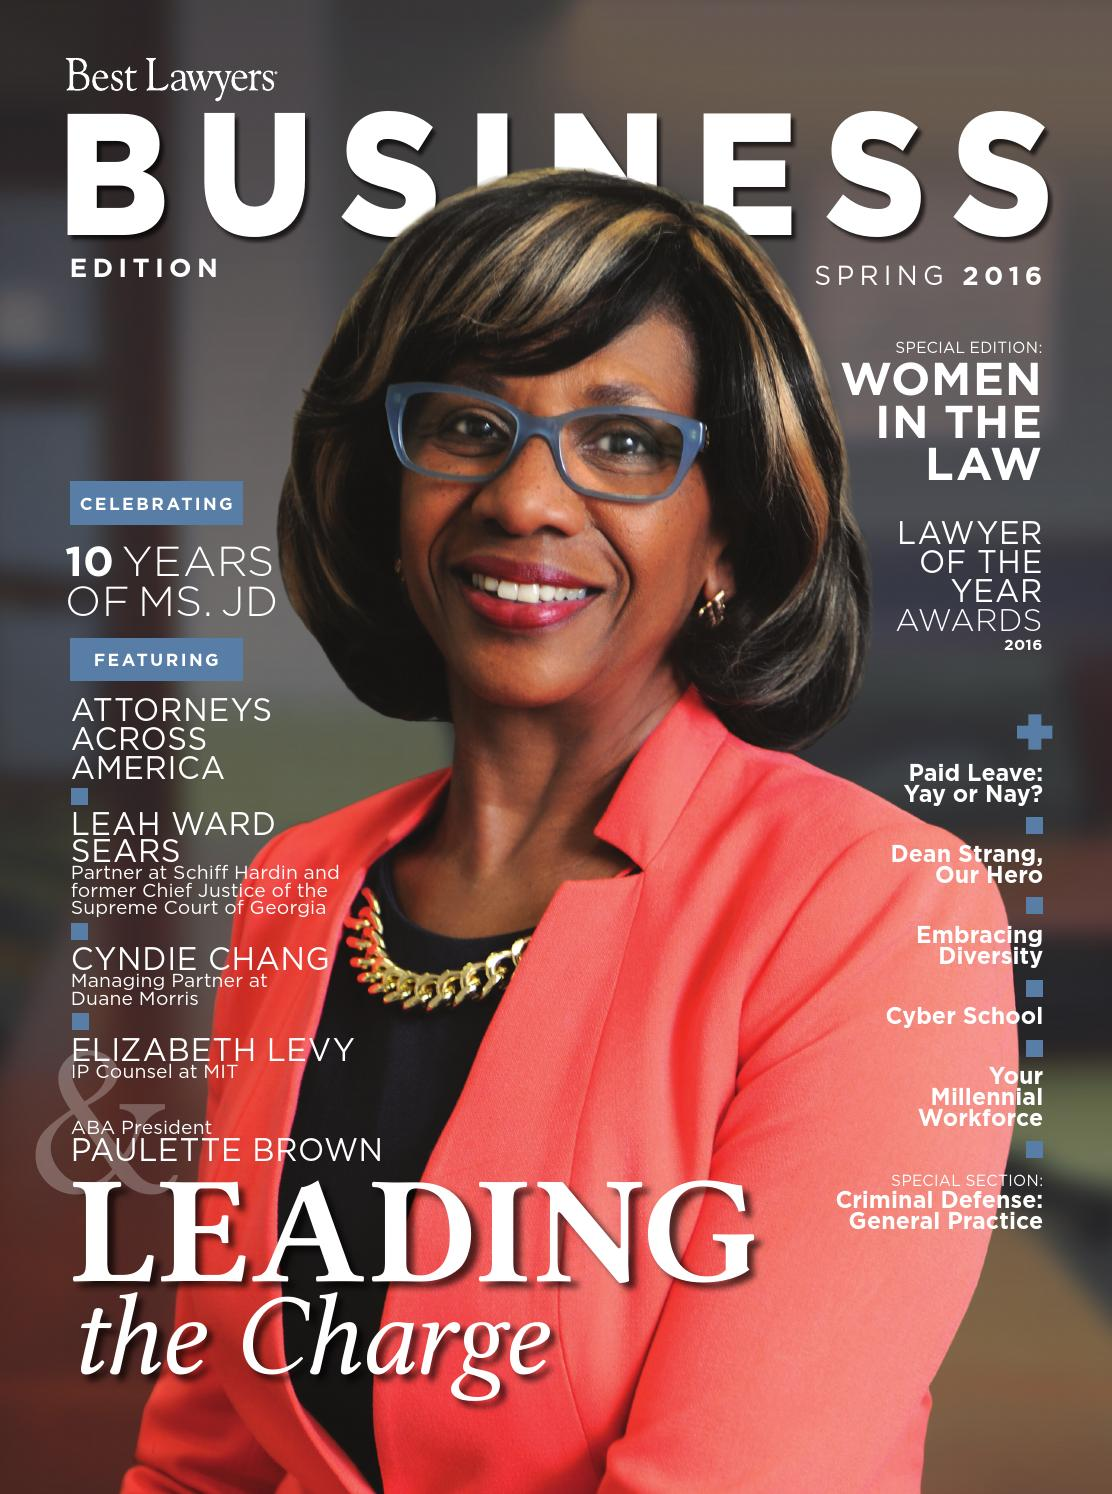 Best Lawyers Spring Business Edition 2016 by Best Lawyers